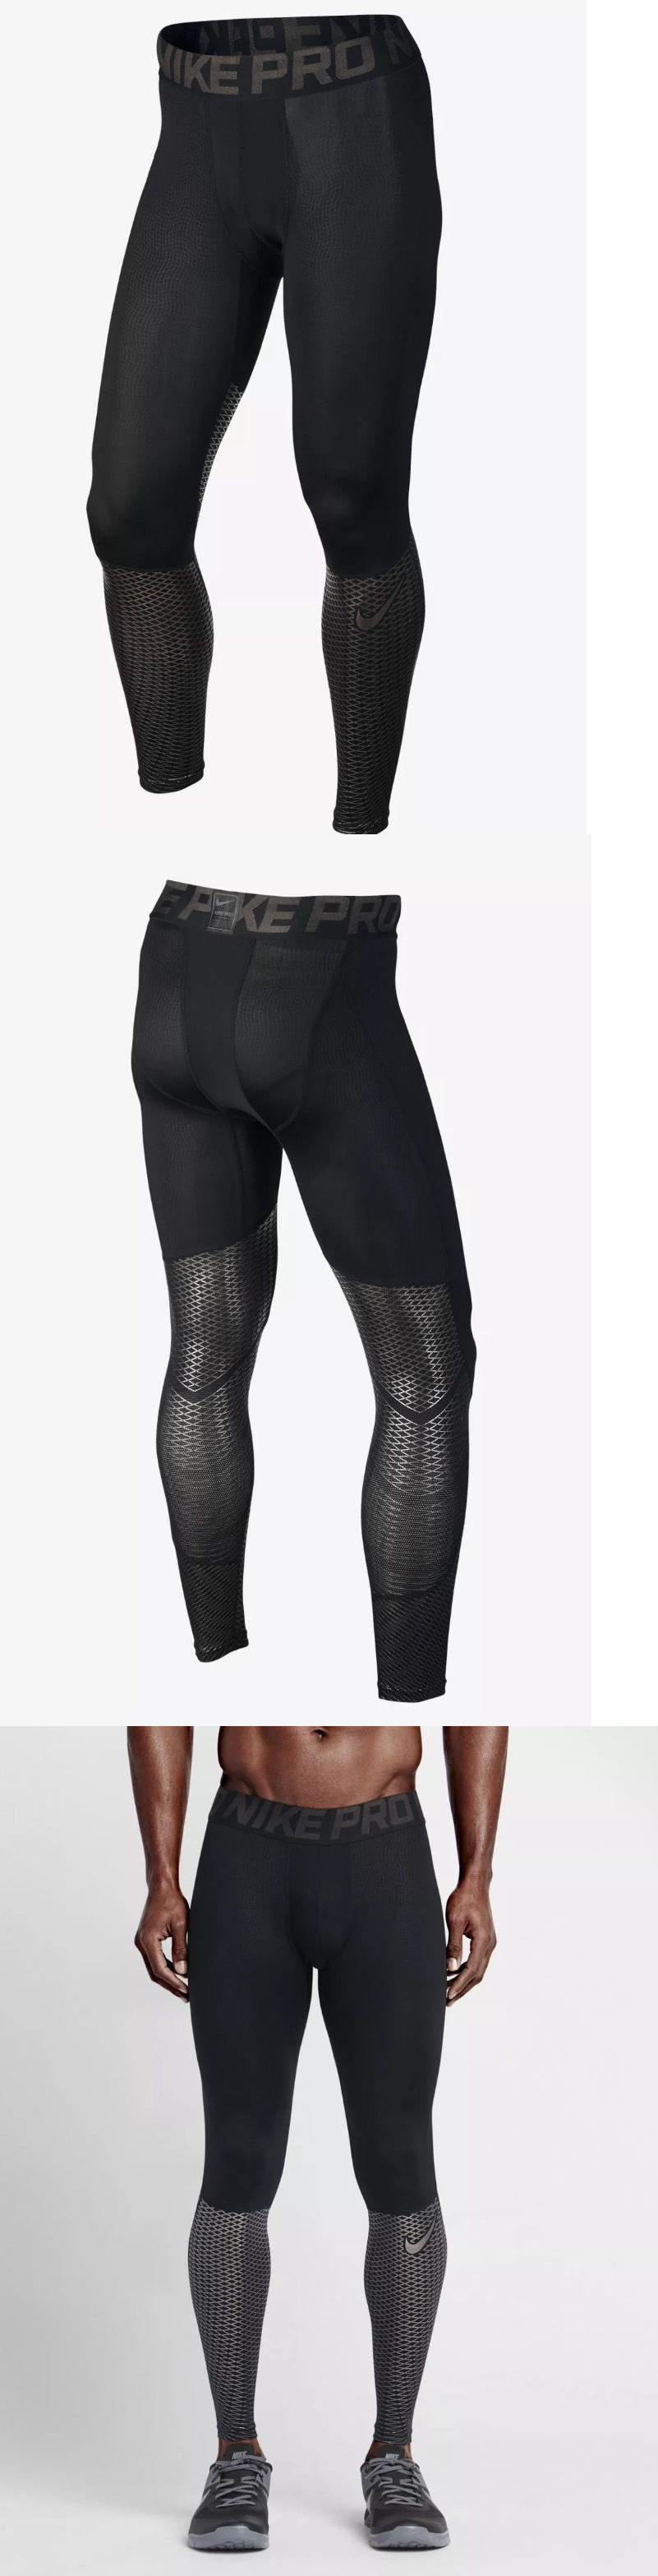 Men Athletics: Nike - Mens Pro Hypercool Max Black Training Tights Size M (744283 010) $80 BUY IT NOW ONLY: $34.95